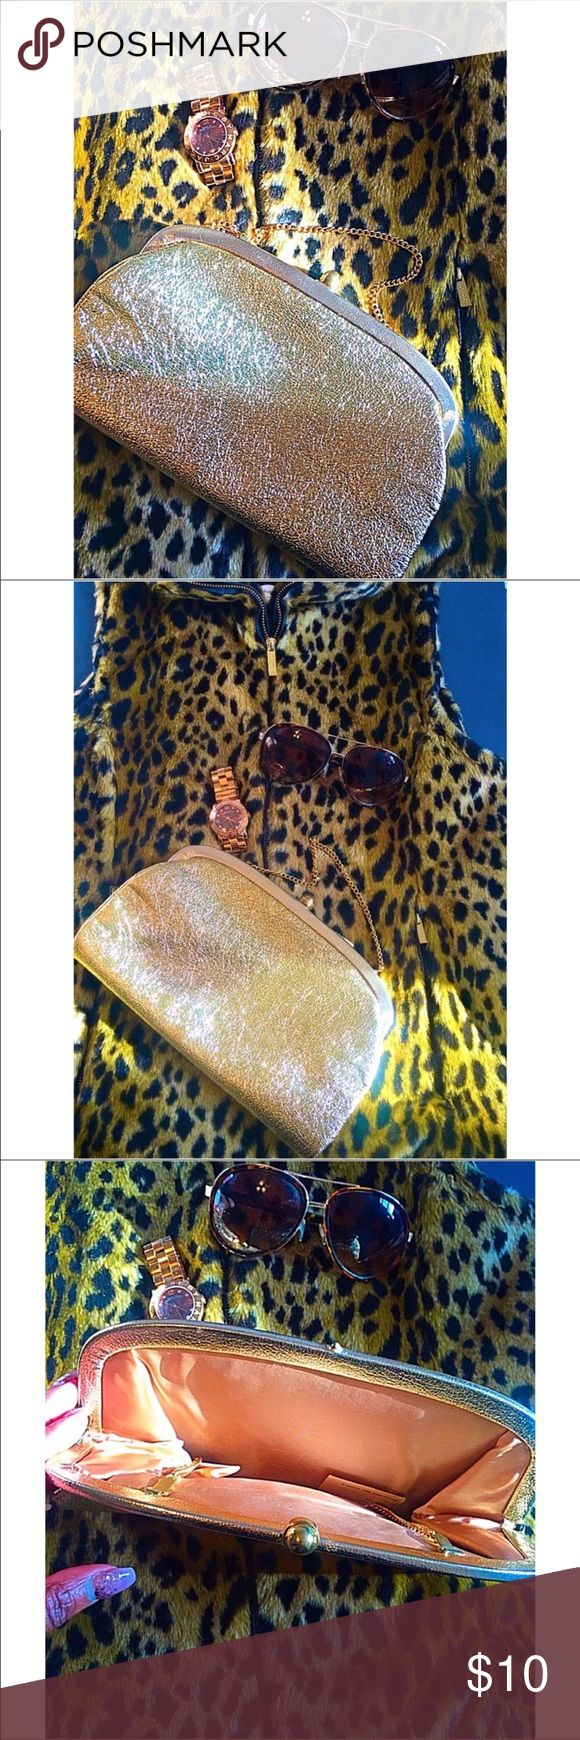 Vintage Gold Purse Pristine vintage Gold Chain purse 😍 This purse is more beautiful than words can describe. Excellent Condition, flawless. Make this ☝🏾️treasure yours today ☺️. Don't be scared to make an offer, you never know unless you try. Bundle multiple items for the best savings. Pay one low price for shipping 🎁!   Thanks for stepping into Coco's Closet Bags